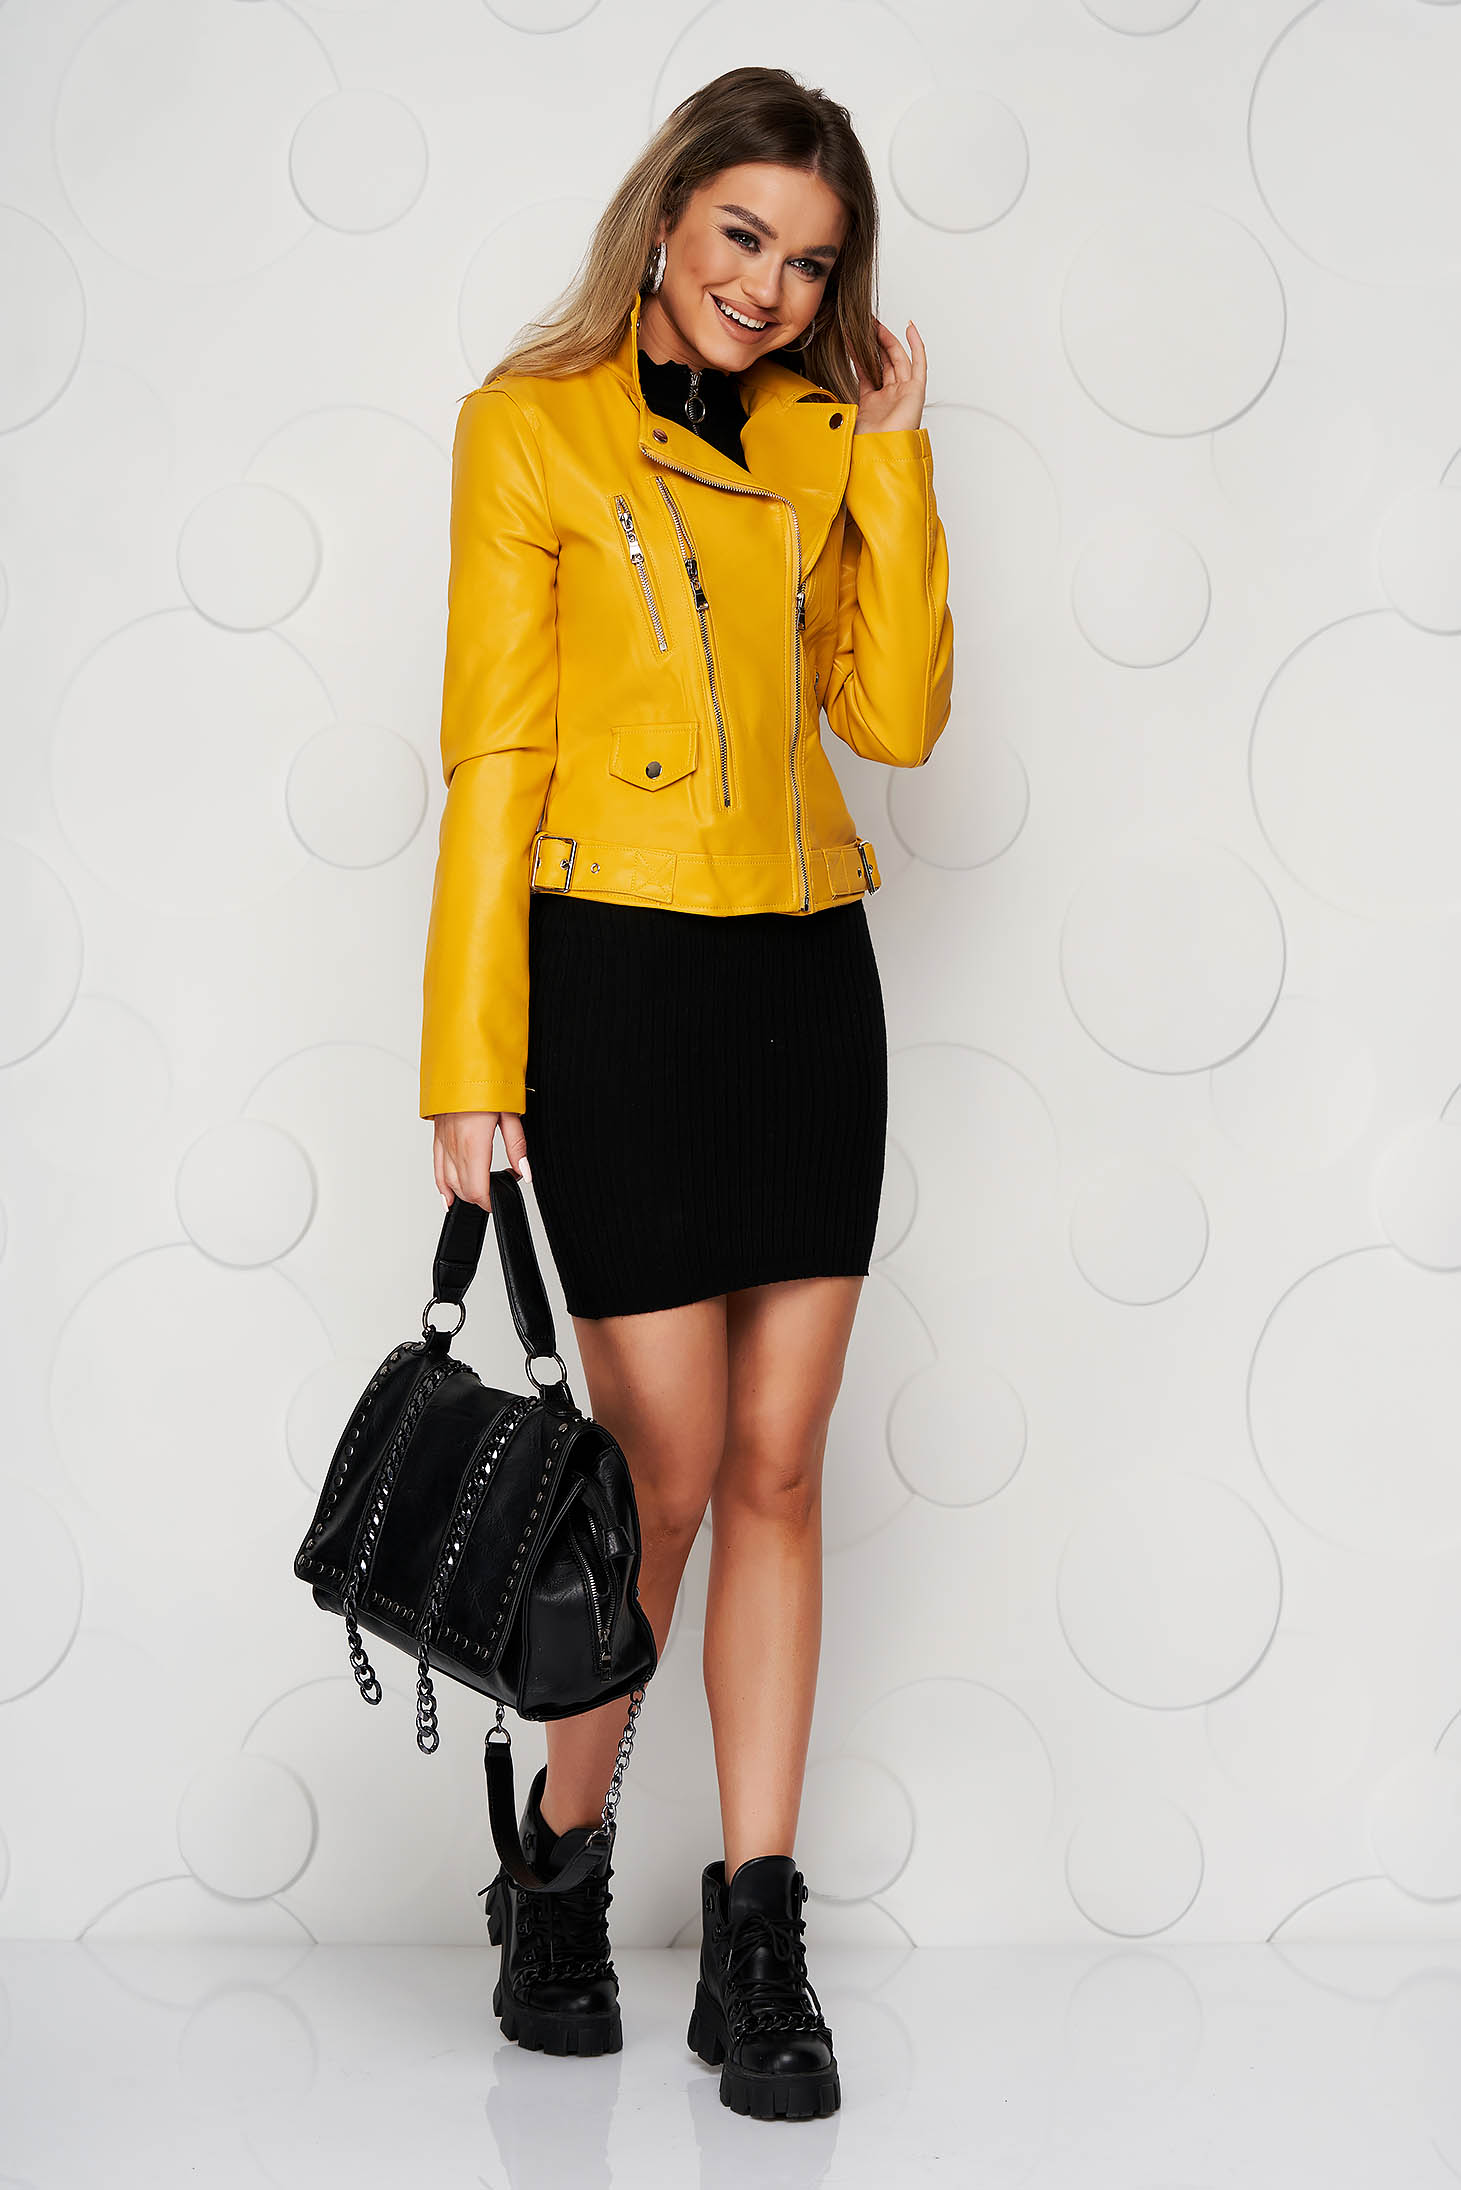 Yellow jacket from ecological leather short cut casual zipper accessory